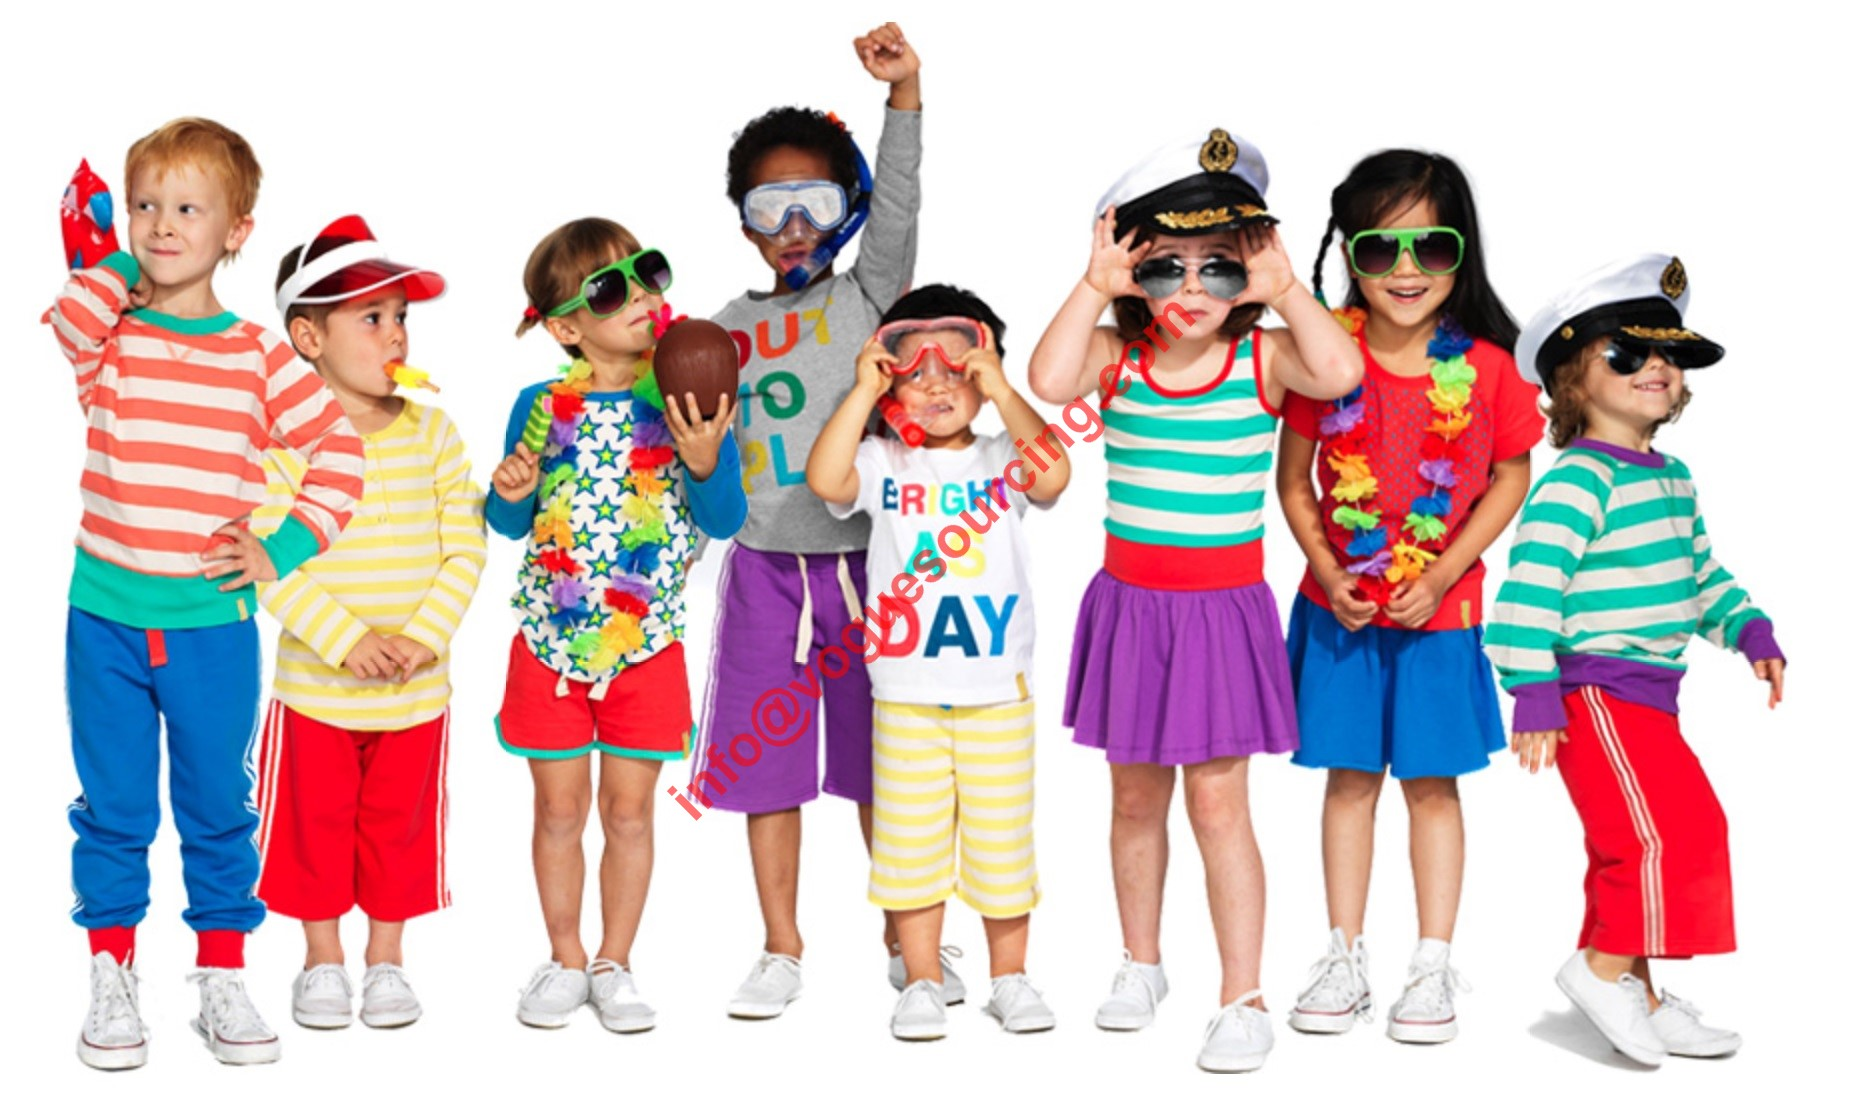 Messy Kids Clothing is an Australia clothing company specialising in baby & childrens clothing.